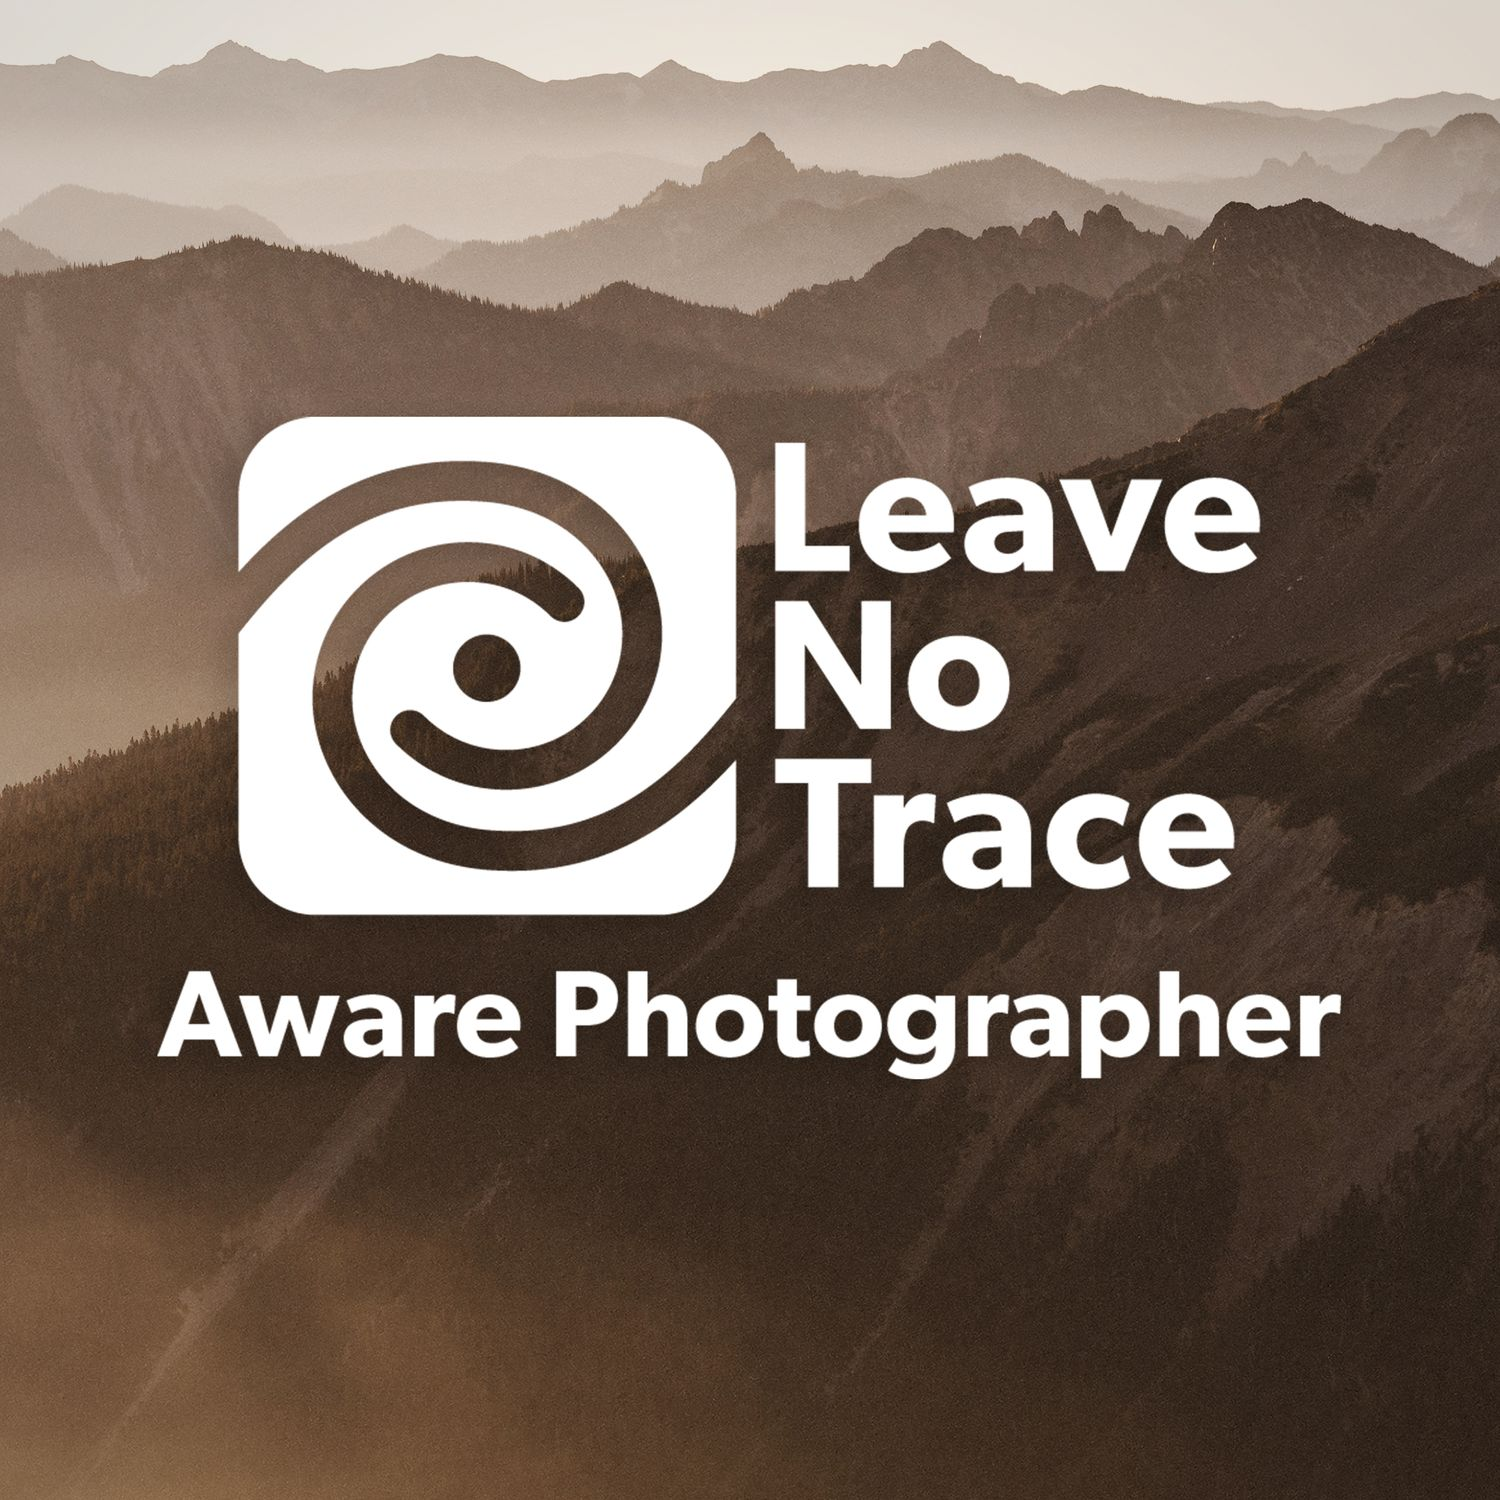 Leave no Trace aware photographer adventure elopement sweden sverige